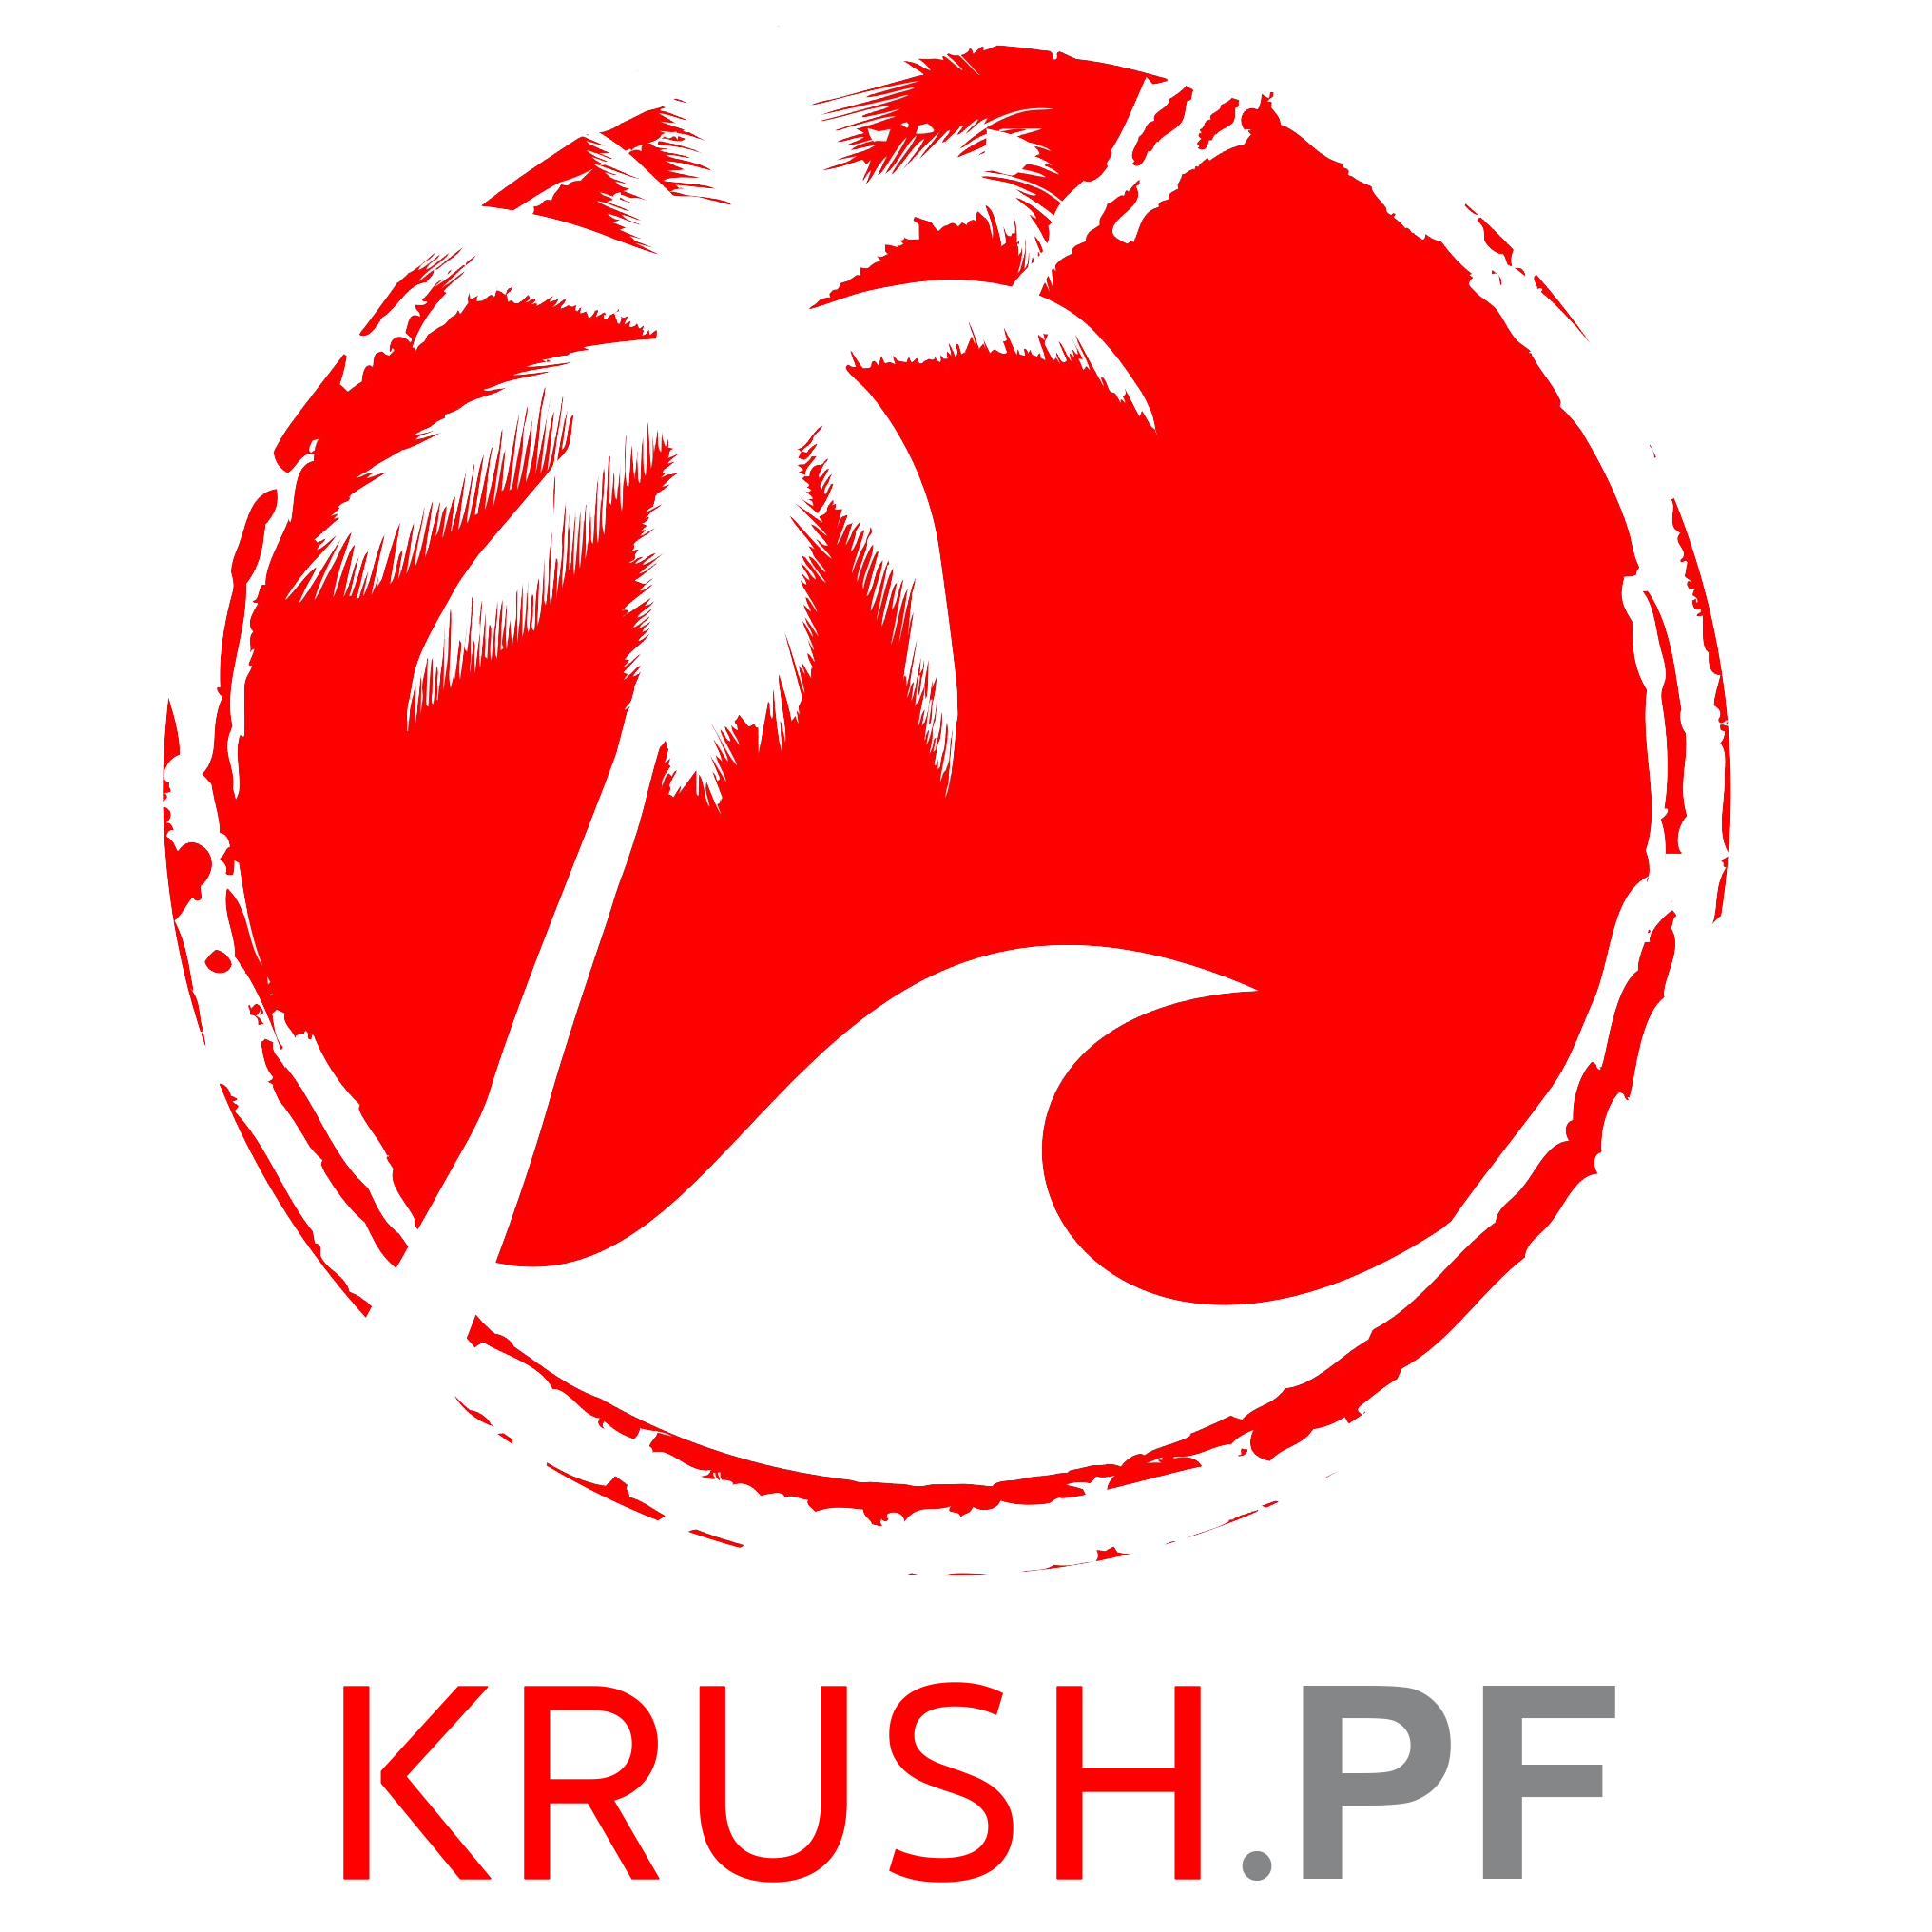 krush - resized.png